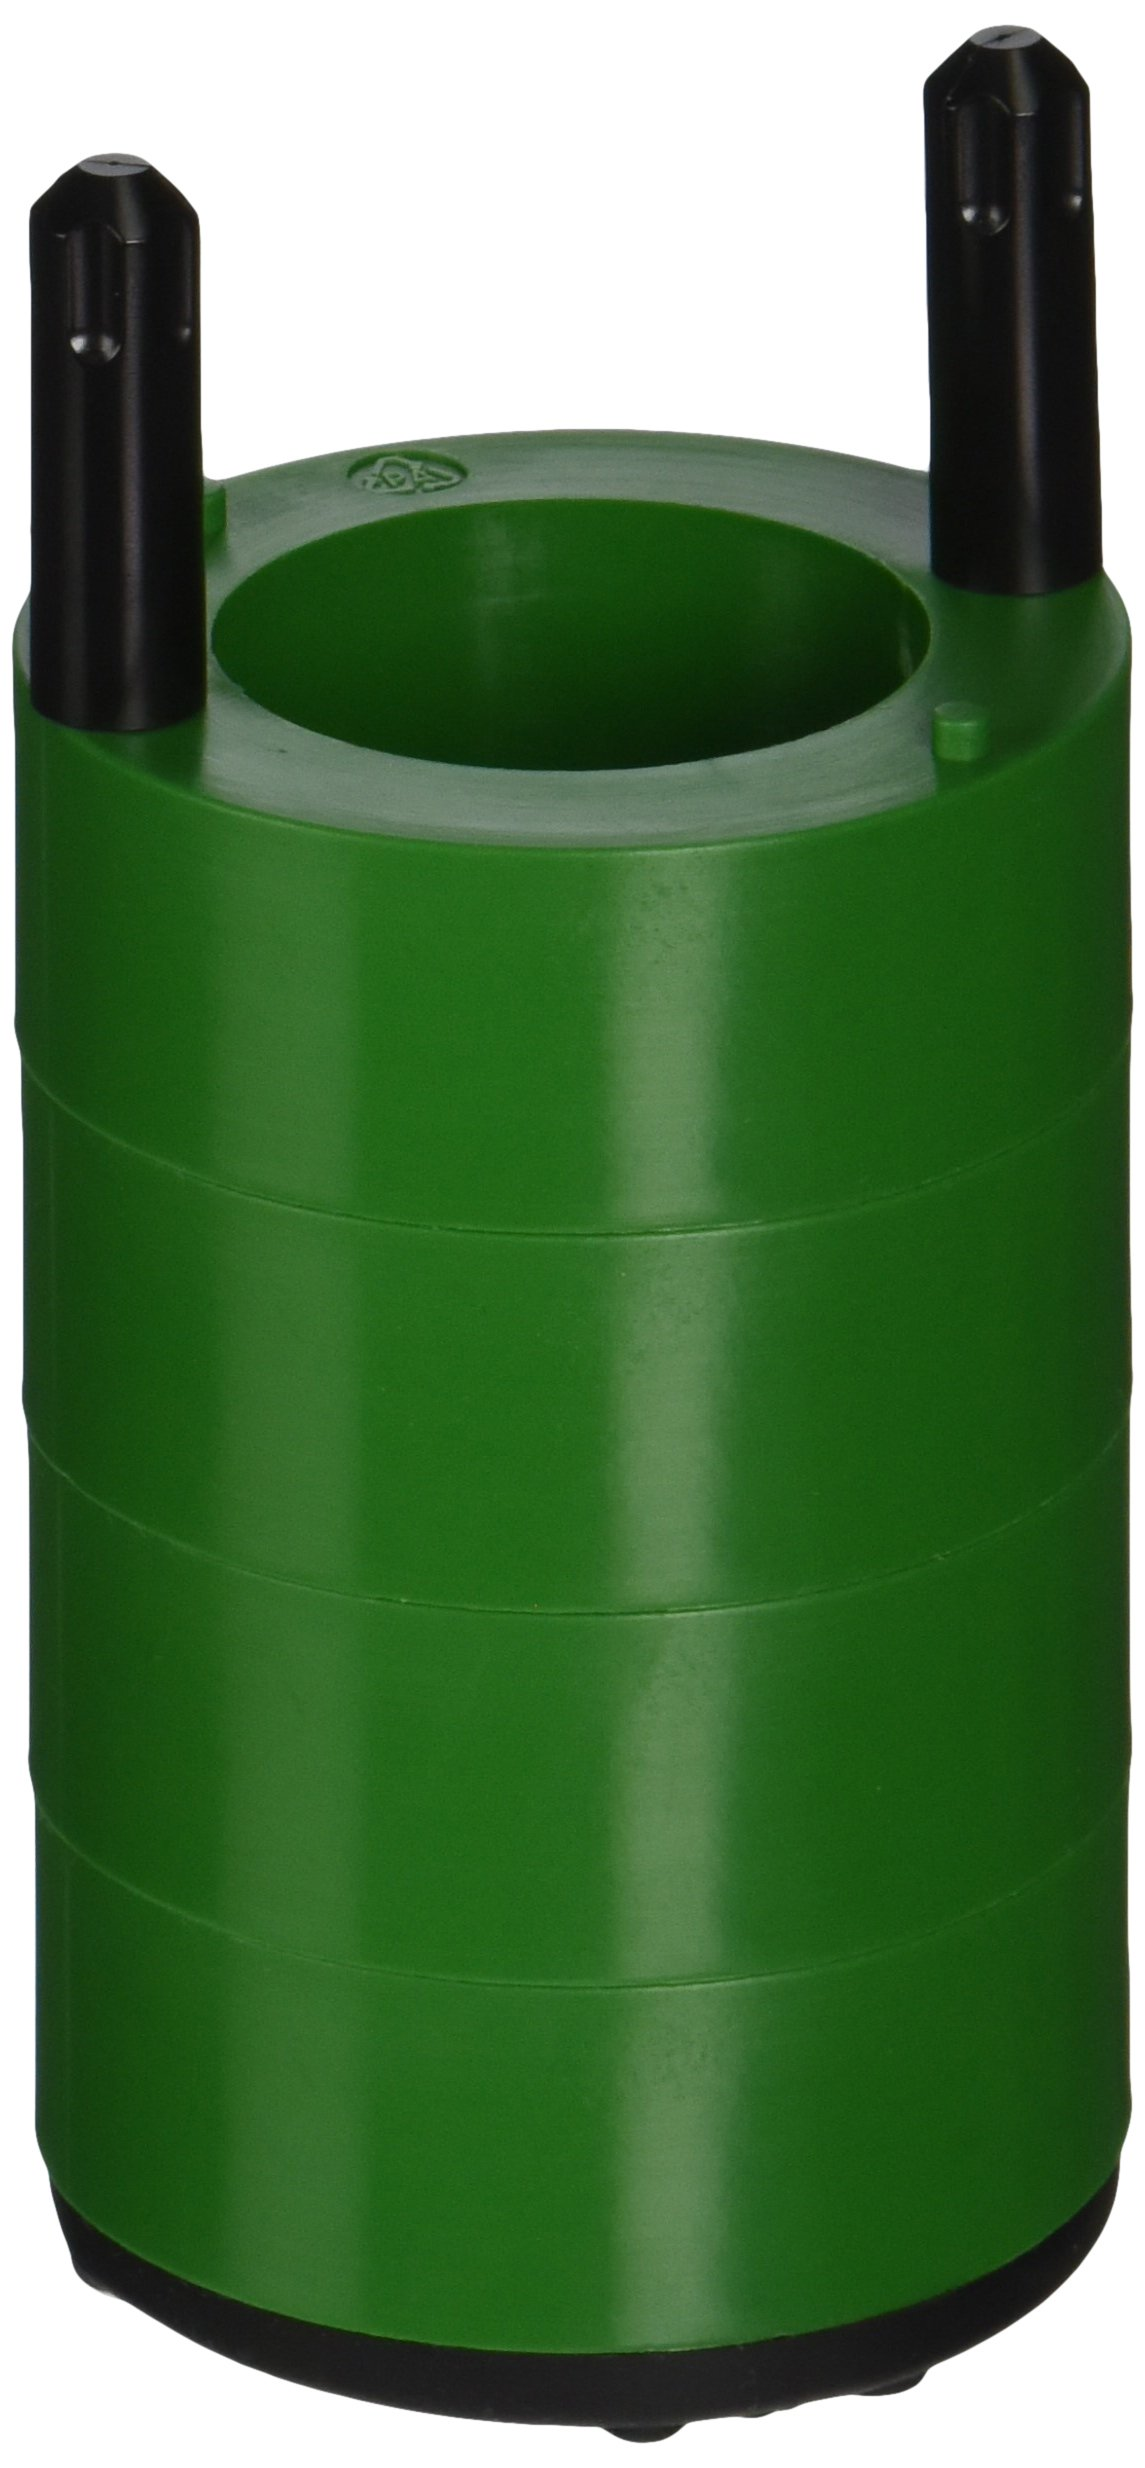 THERMO FISHER SCIENTIFIC 75008182 Centrifuge Adapter for Round Bucket, 1 mL x 50 mL Capacity DIN Standard Tube, Green